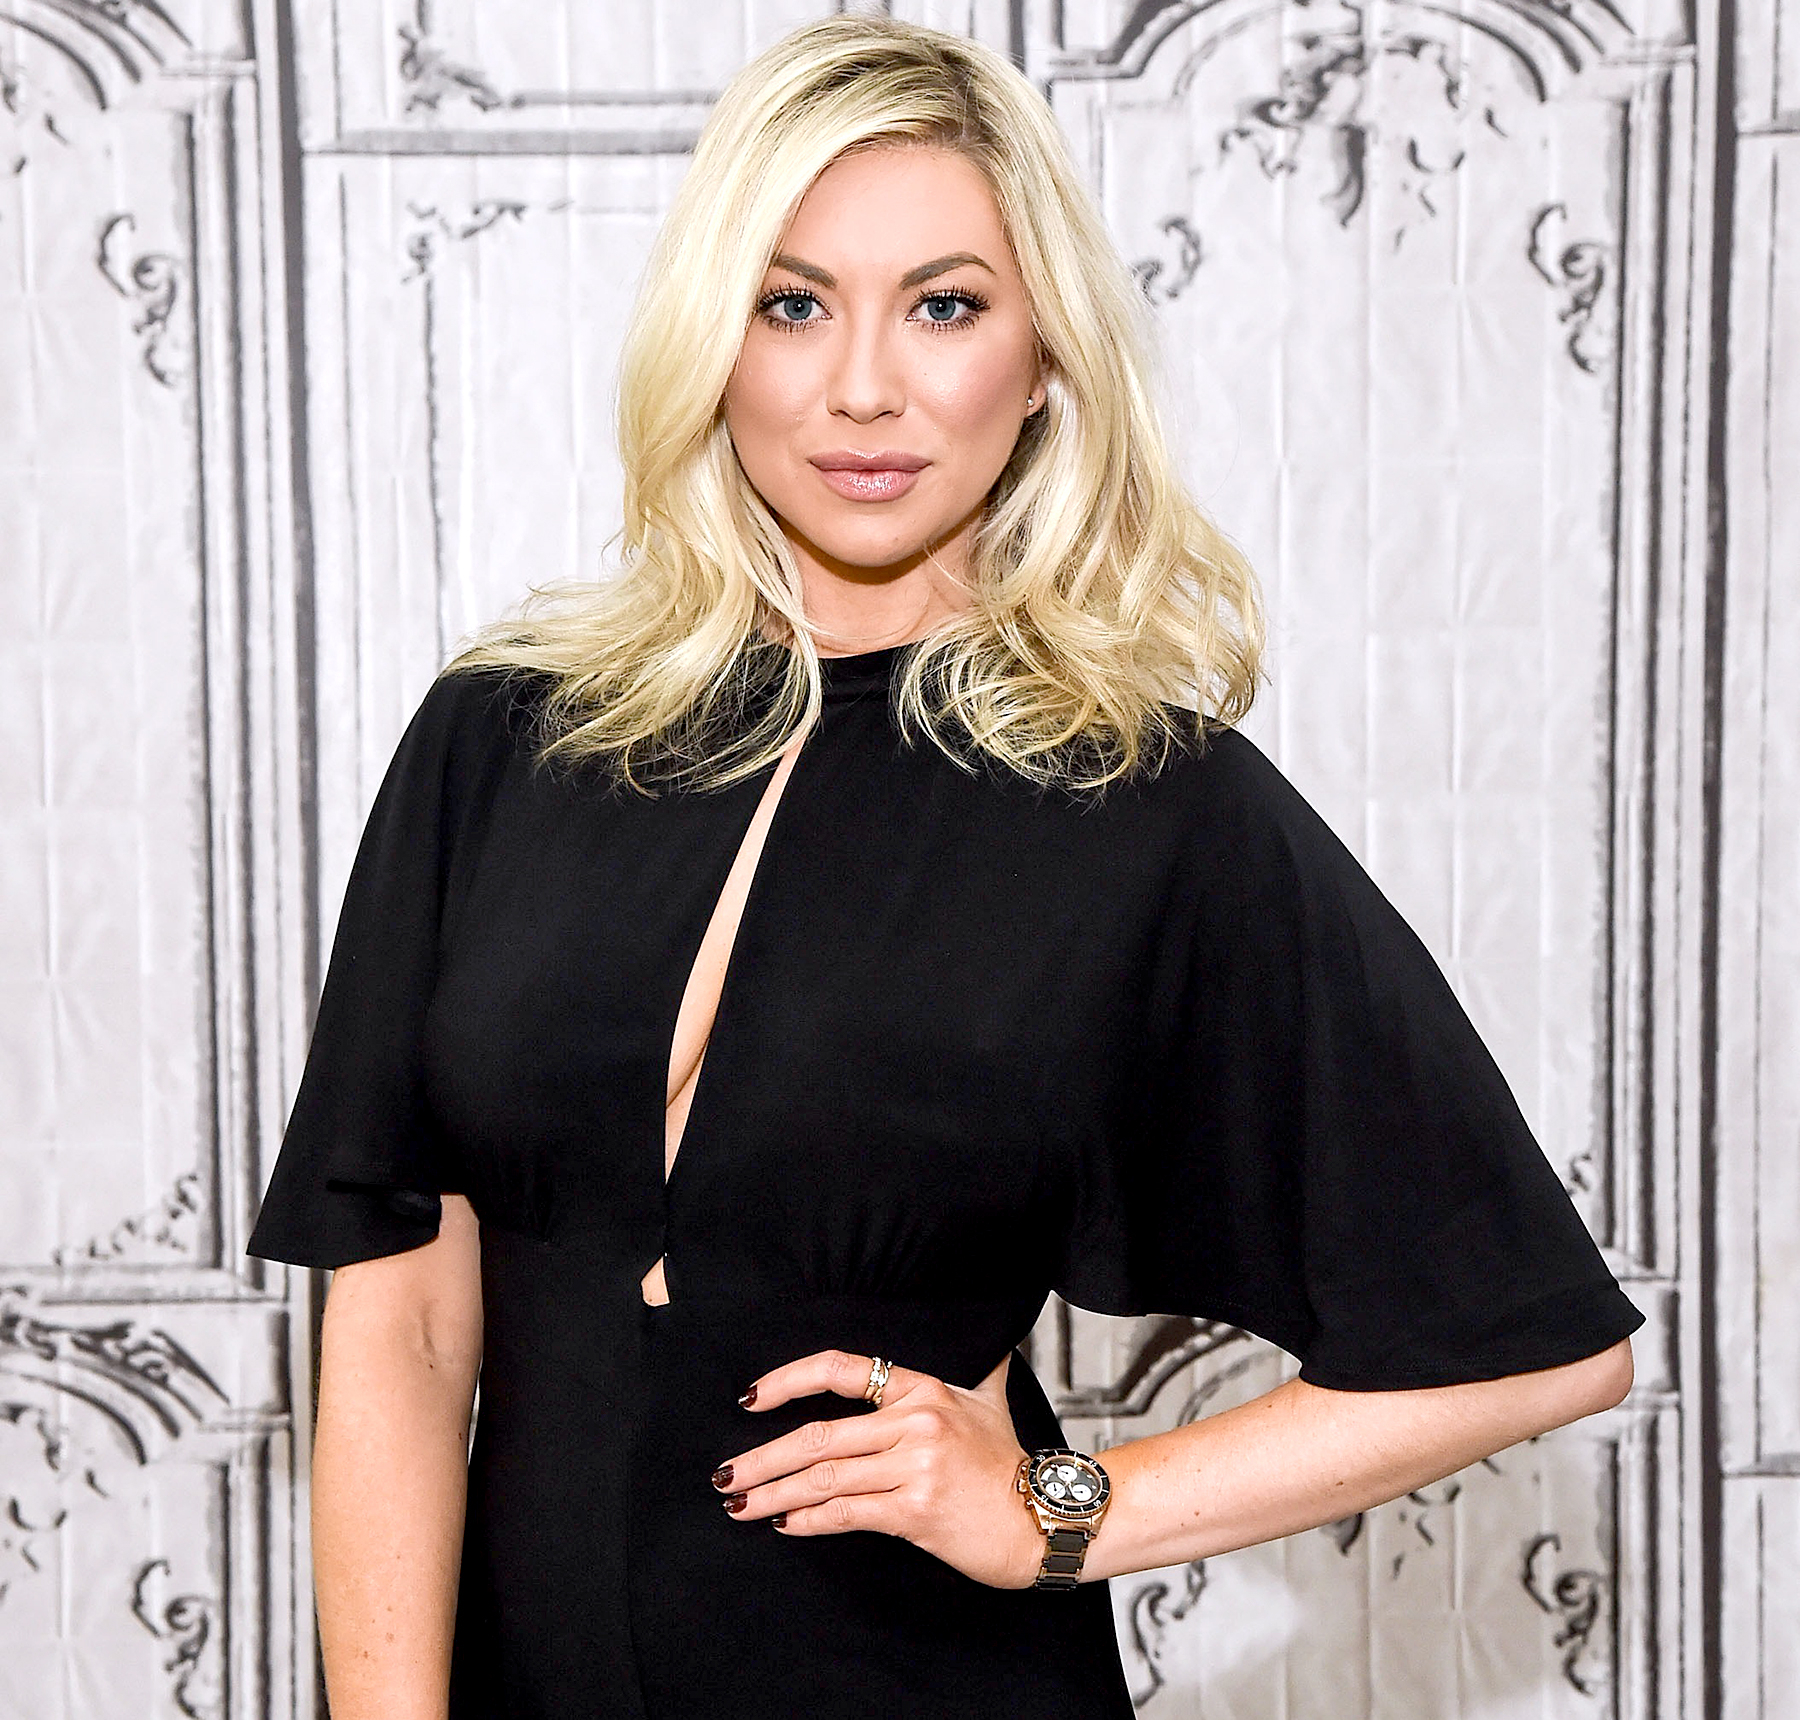 Stassi Schroeder attends AOL Build to discuss her podcast 'Straight Up with Stassi' at AOL HQ on January 9, 2017 in New York City.